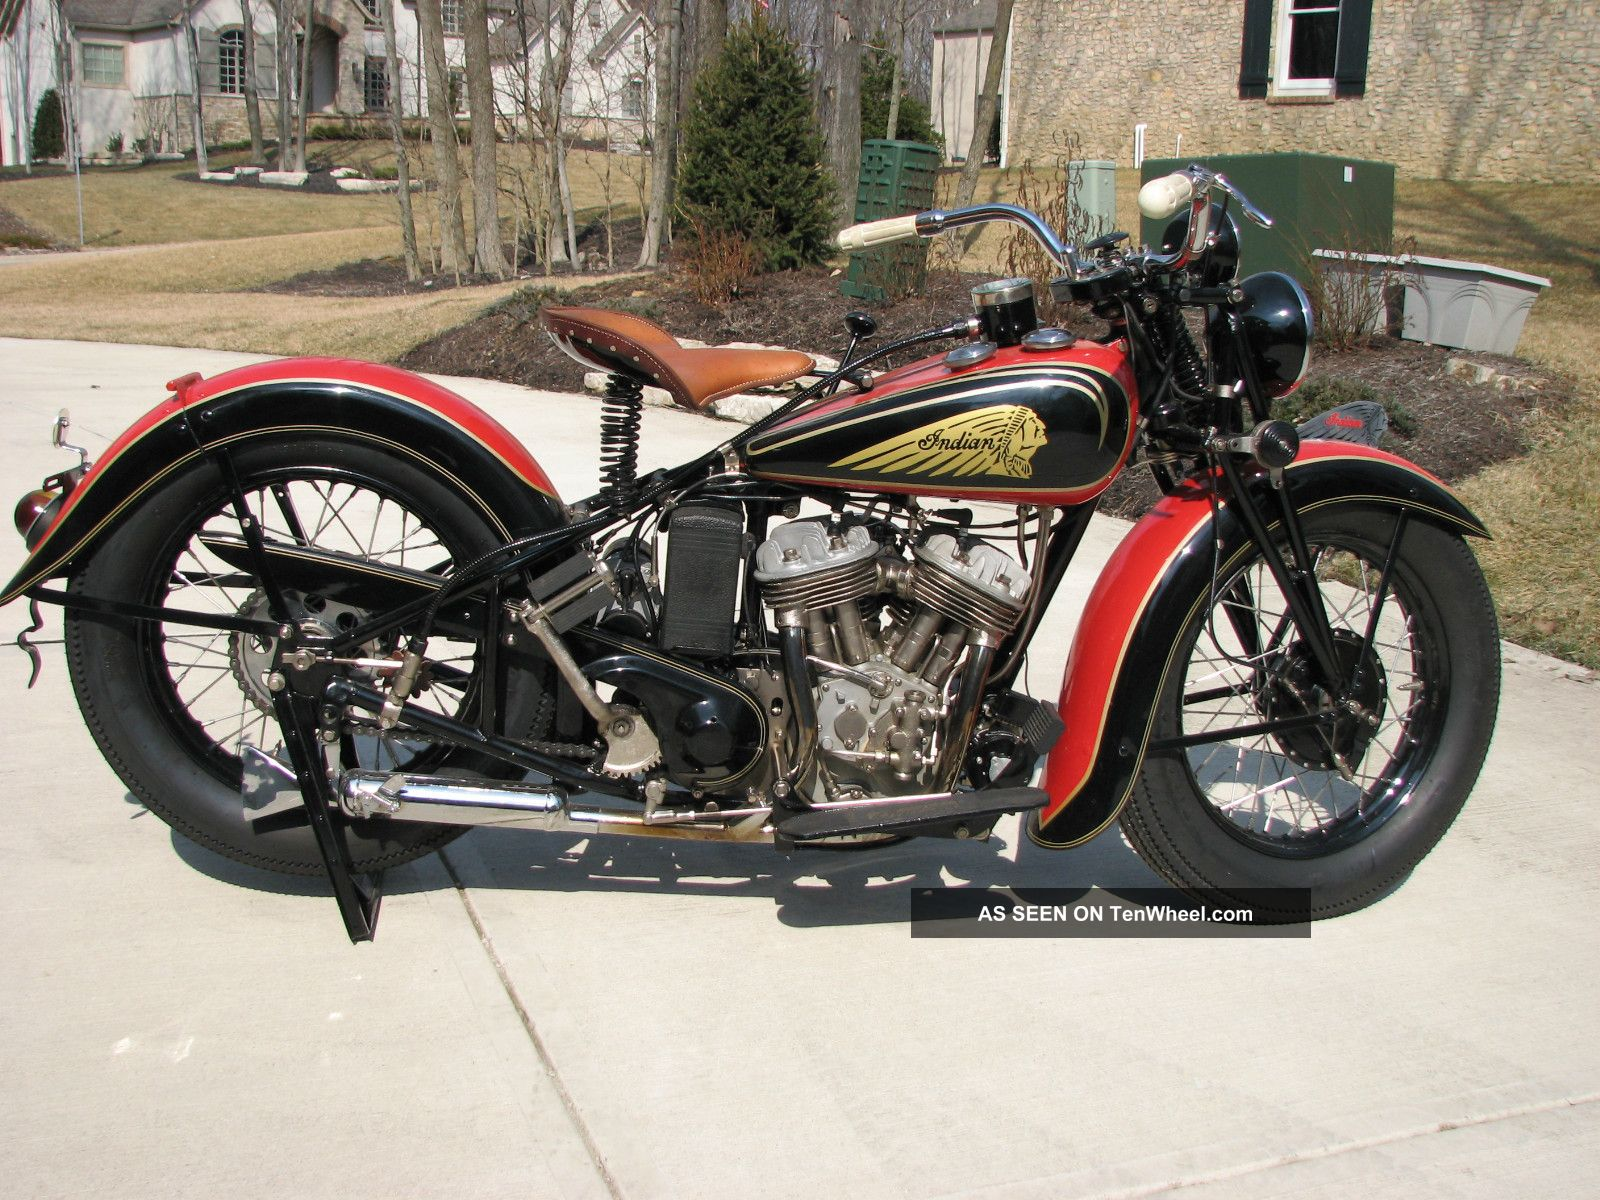 Antique Indian Motorcycles For Sale Pin 1936 Indian Sport Scout Motorcycle on Pinterest